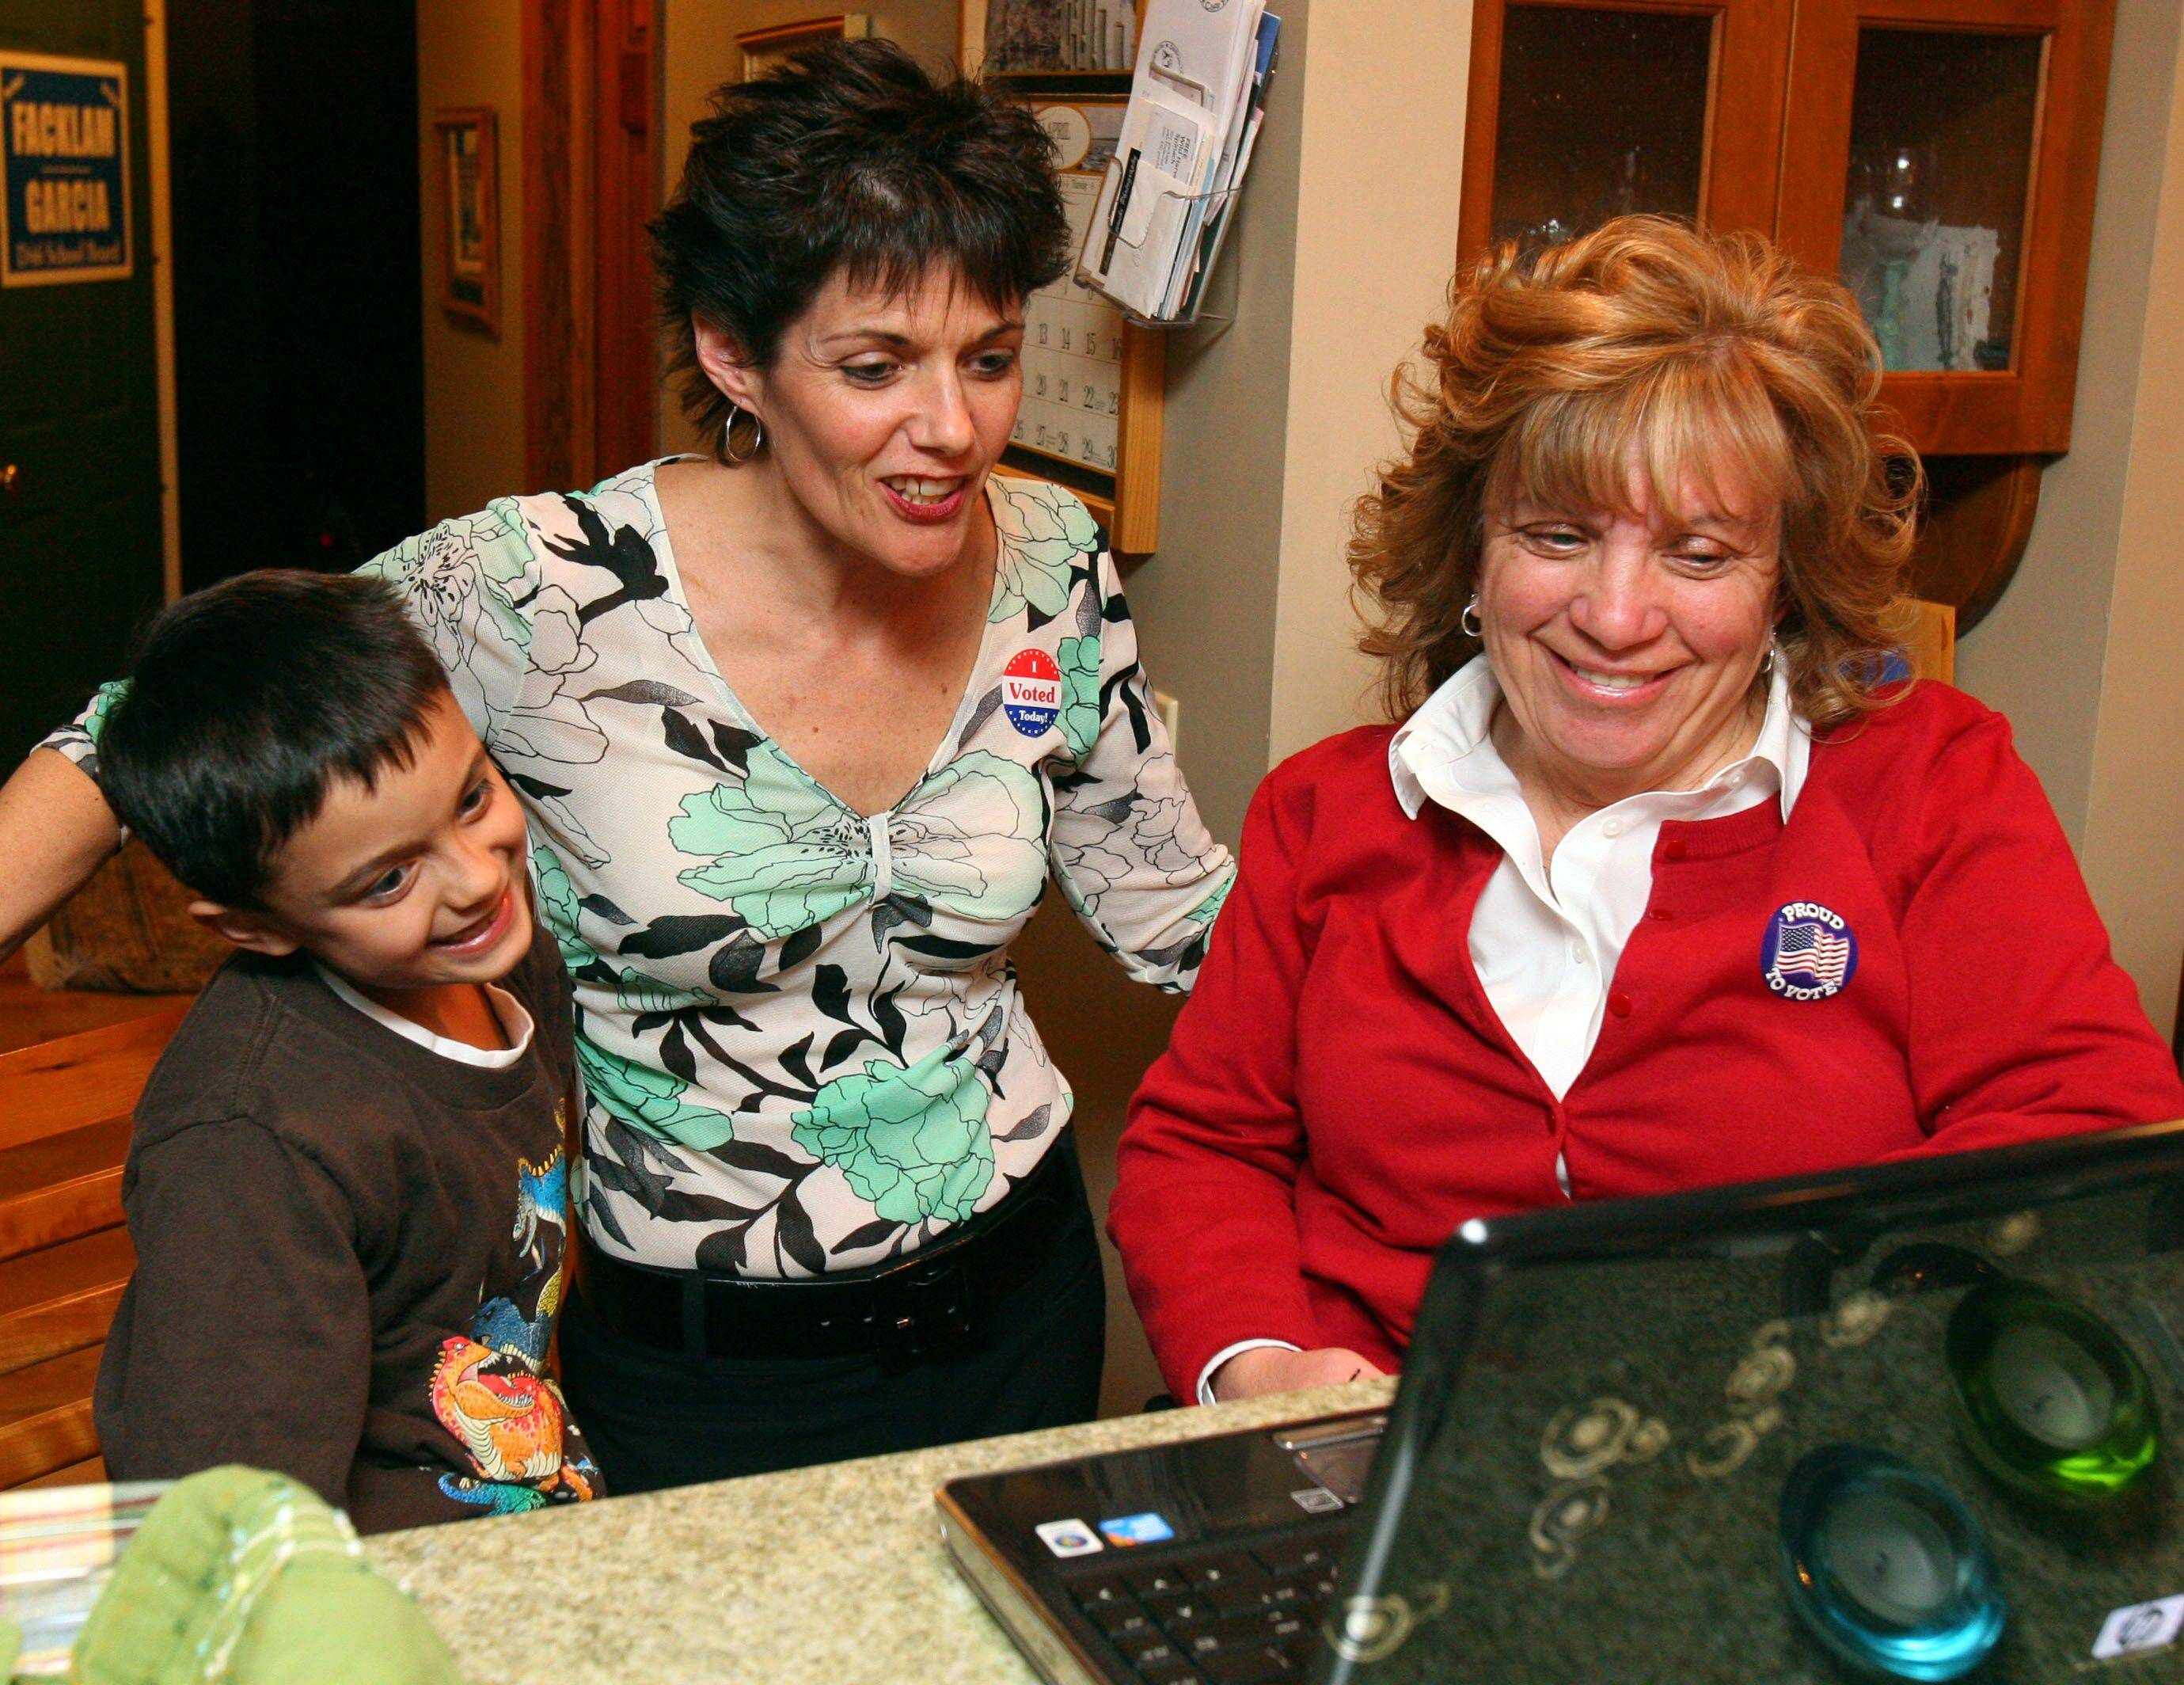 Grayslake Elementary District 46 board incumbents Mary Garcia, left, and Susan Facklam look over election results with 8-year-old Mitchell Garcia. They gathered at Facklam's home Tuesday in Grayslake. Facklam was re-elected, but Garcia lost.